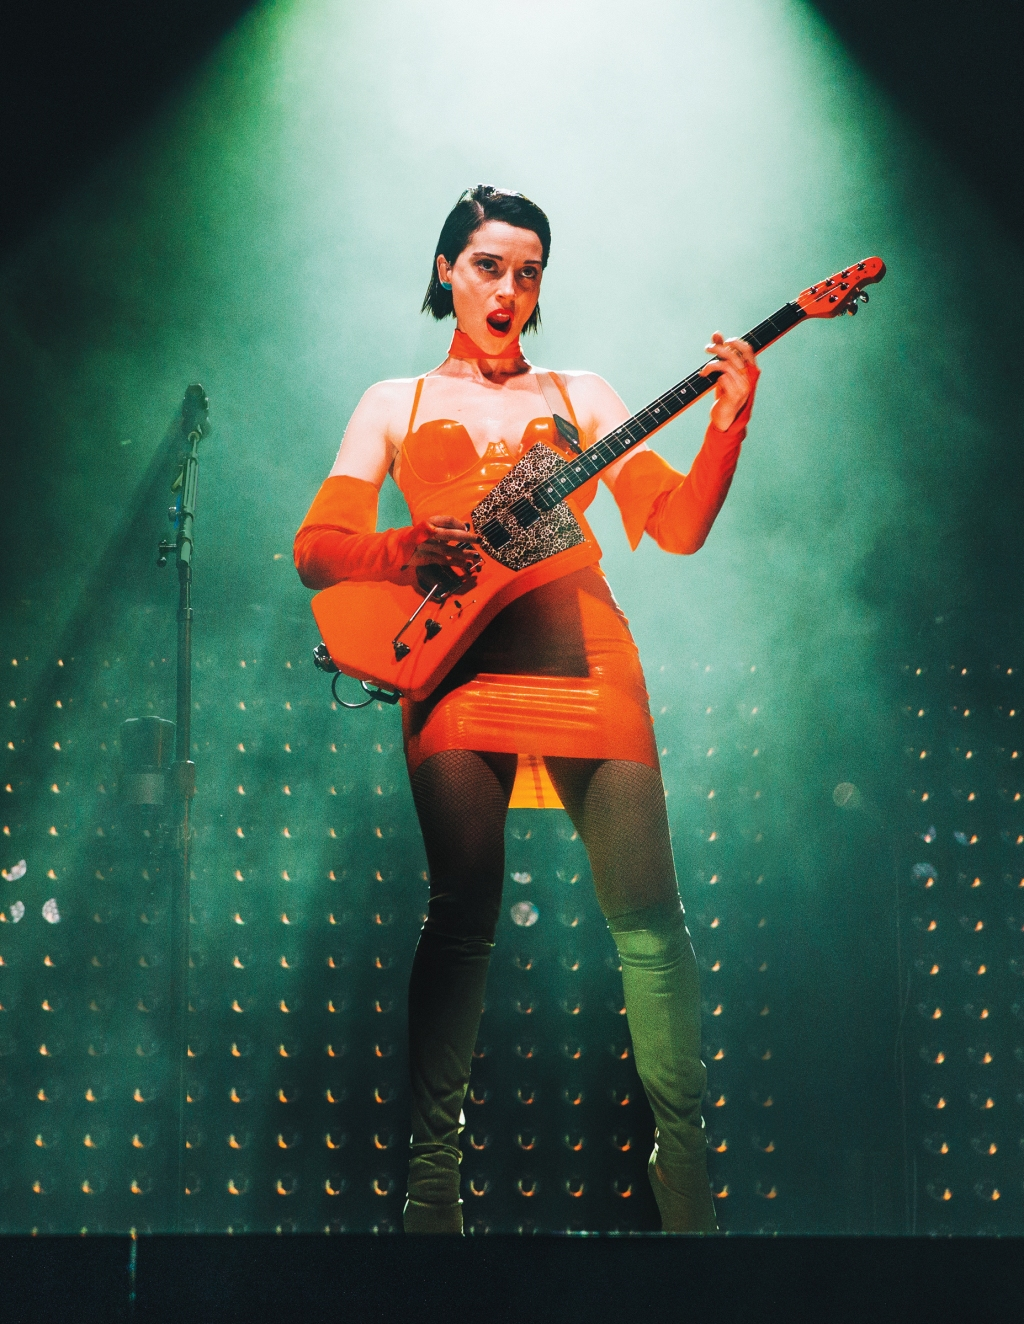 St. Vincent performs at Austin City Limits Music Festival, October 2018.